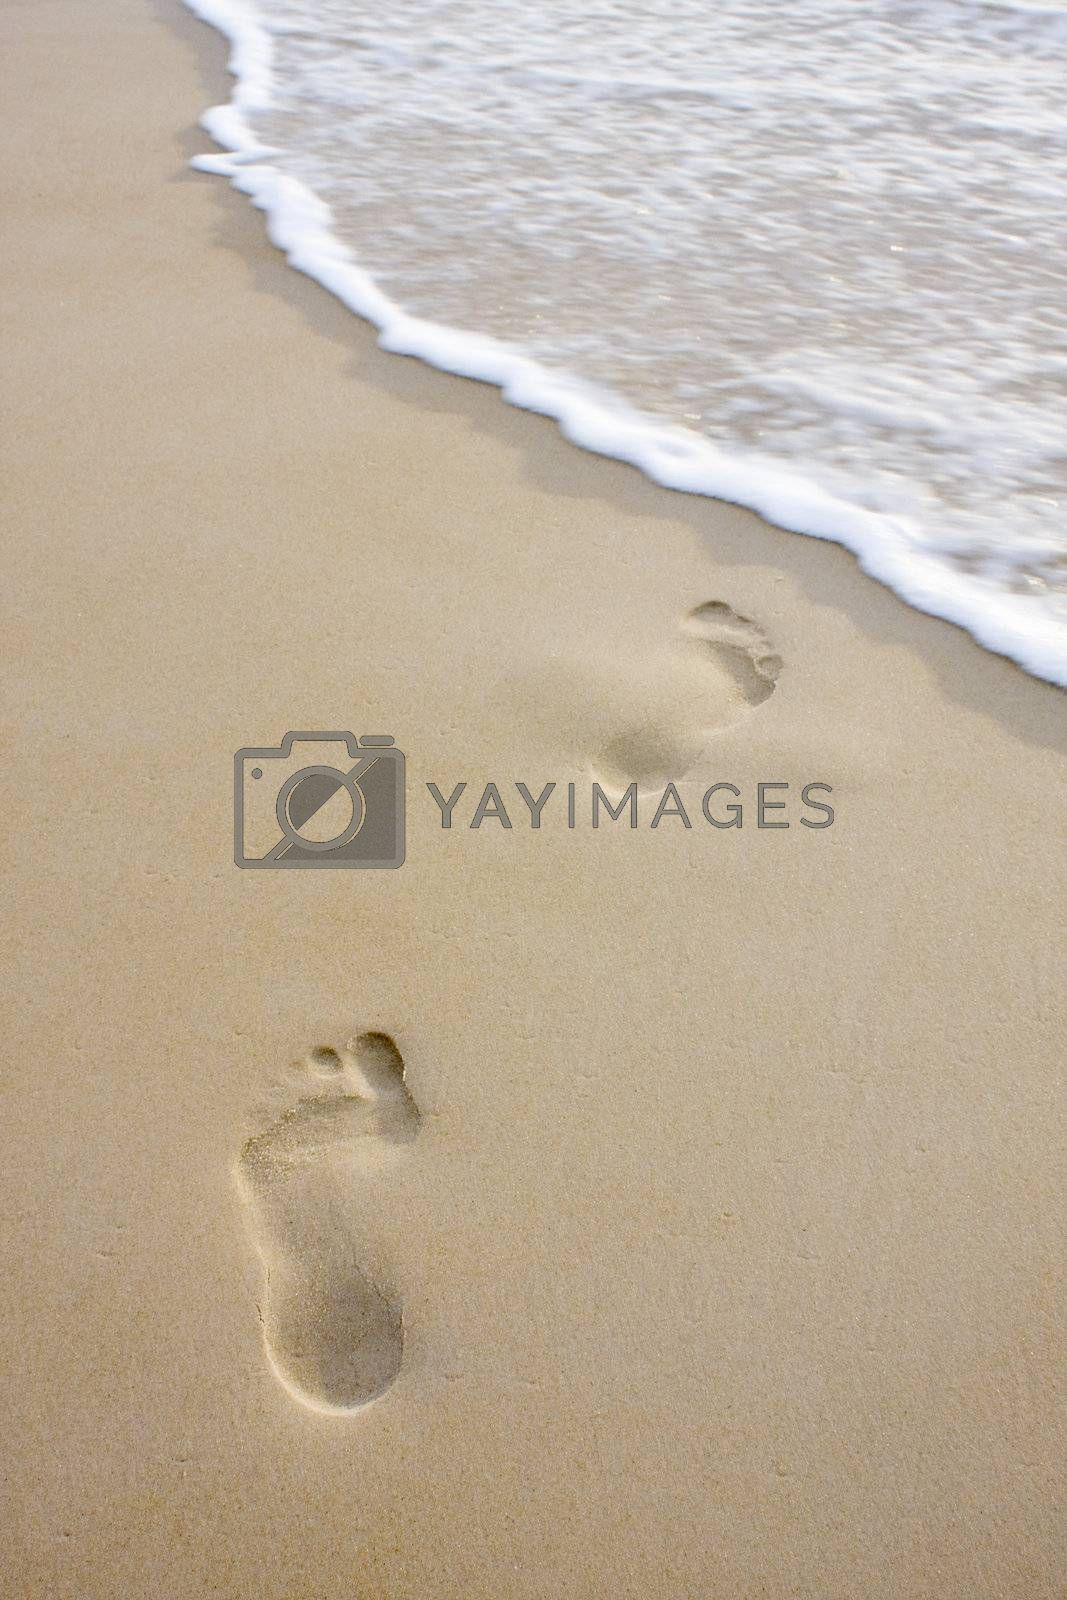 Two footprints on a beach leading into the sea